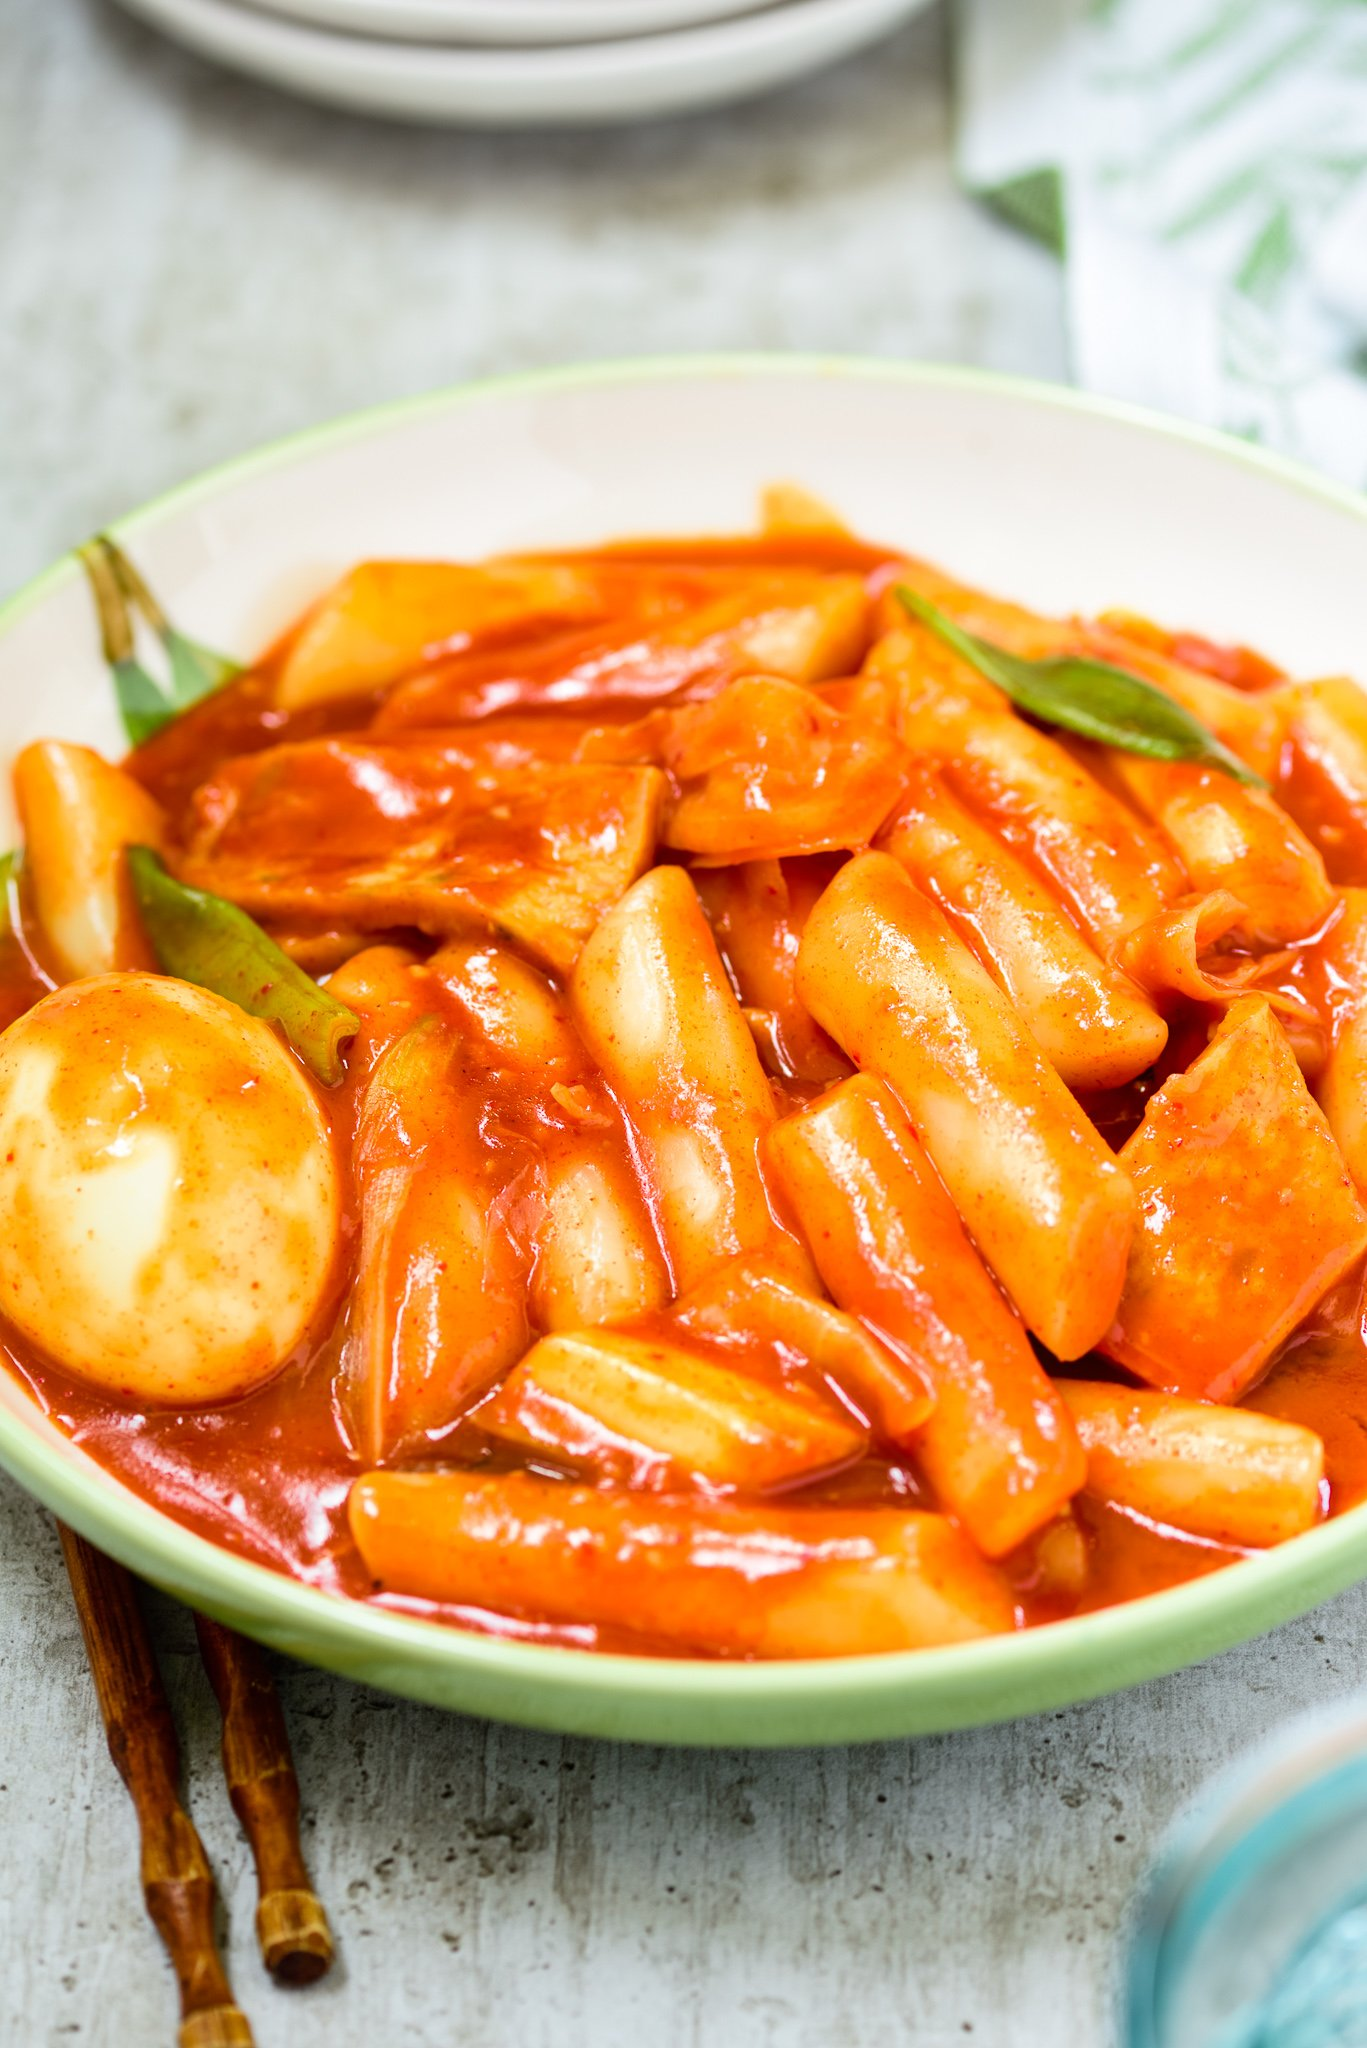 Tteokbokki Spicy Stir Fried Rice Cakes Korean Bapsang If you enjoy eating, whispering sounds, eating show/mukbang. tteokbokki spicy stir fried rice cakes